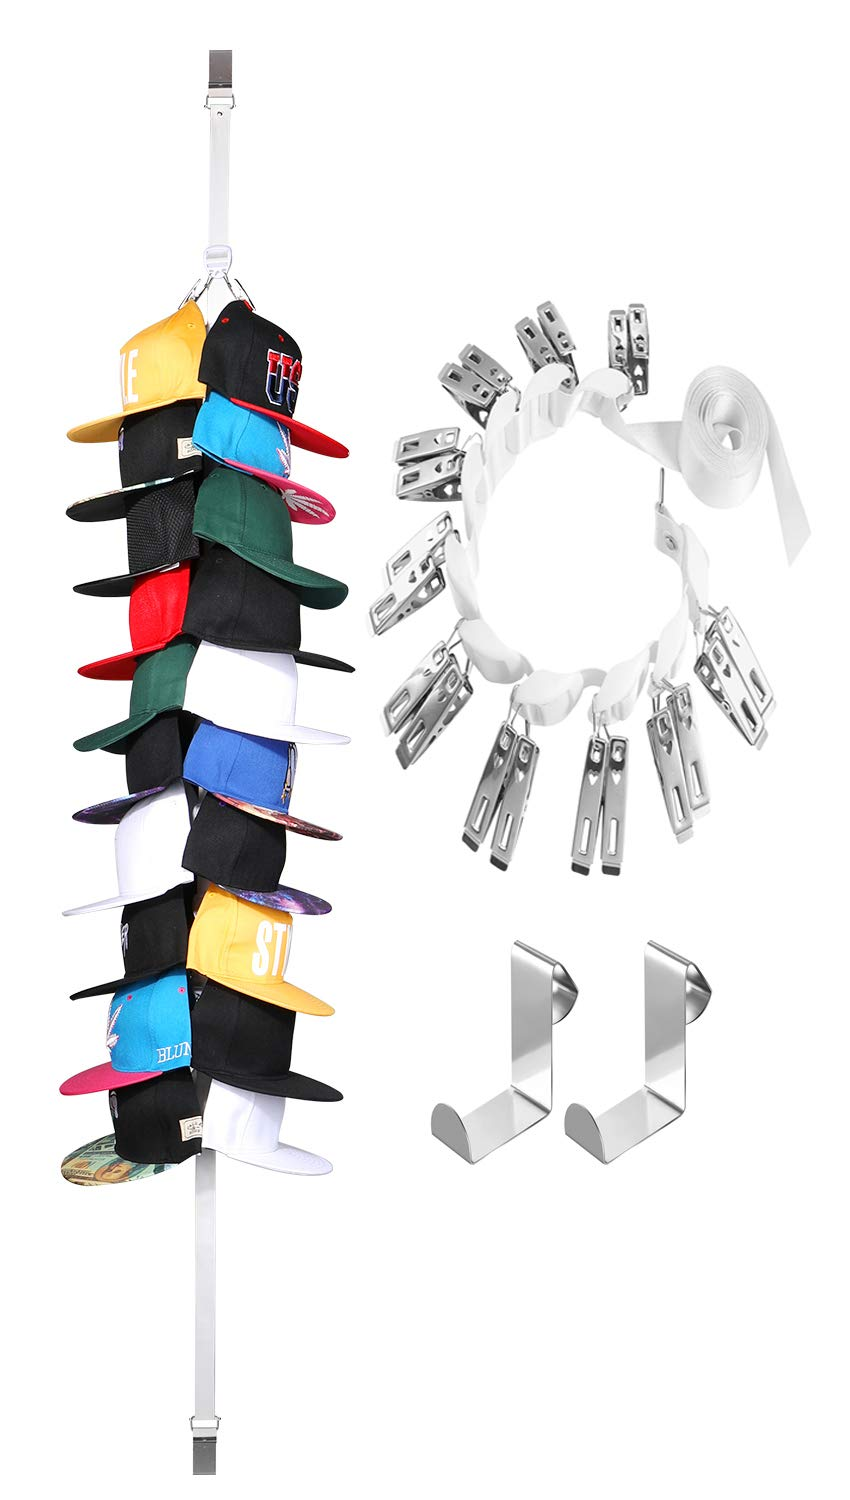 UTOWO Cap Rack for Baseball-Cap Organizer-Holder-Storage - Adjustable Display Any Style Hat-Rack for Door Closet Wall